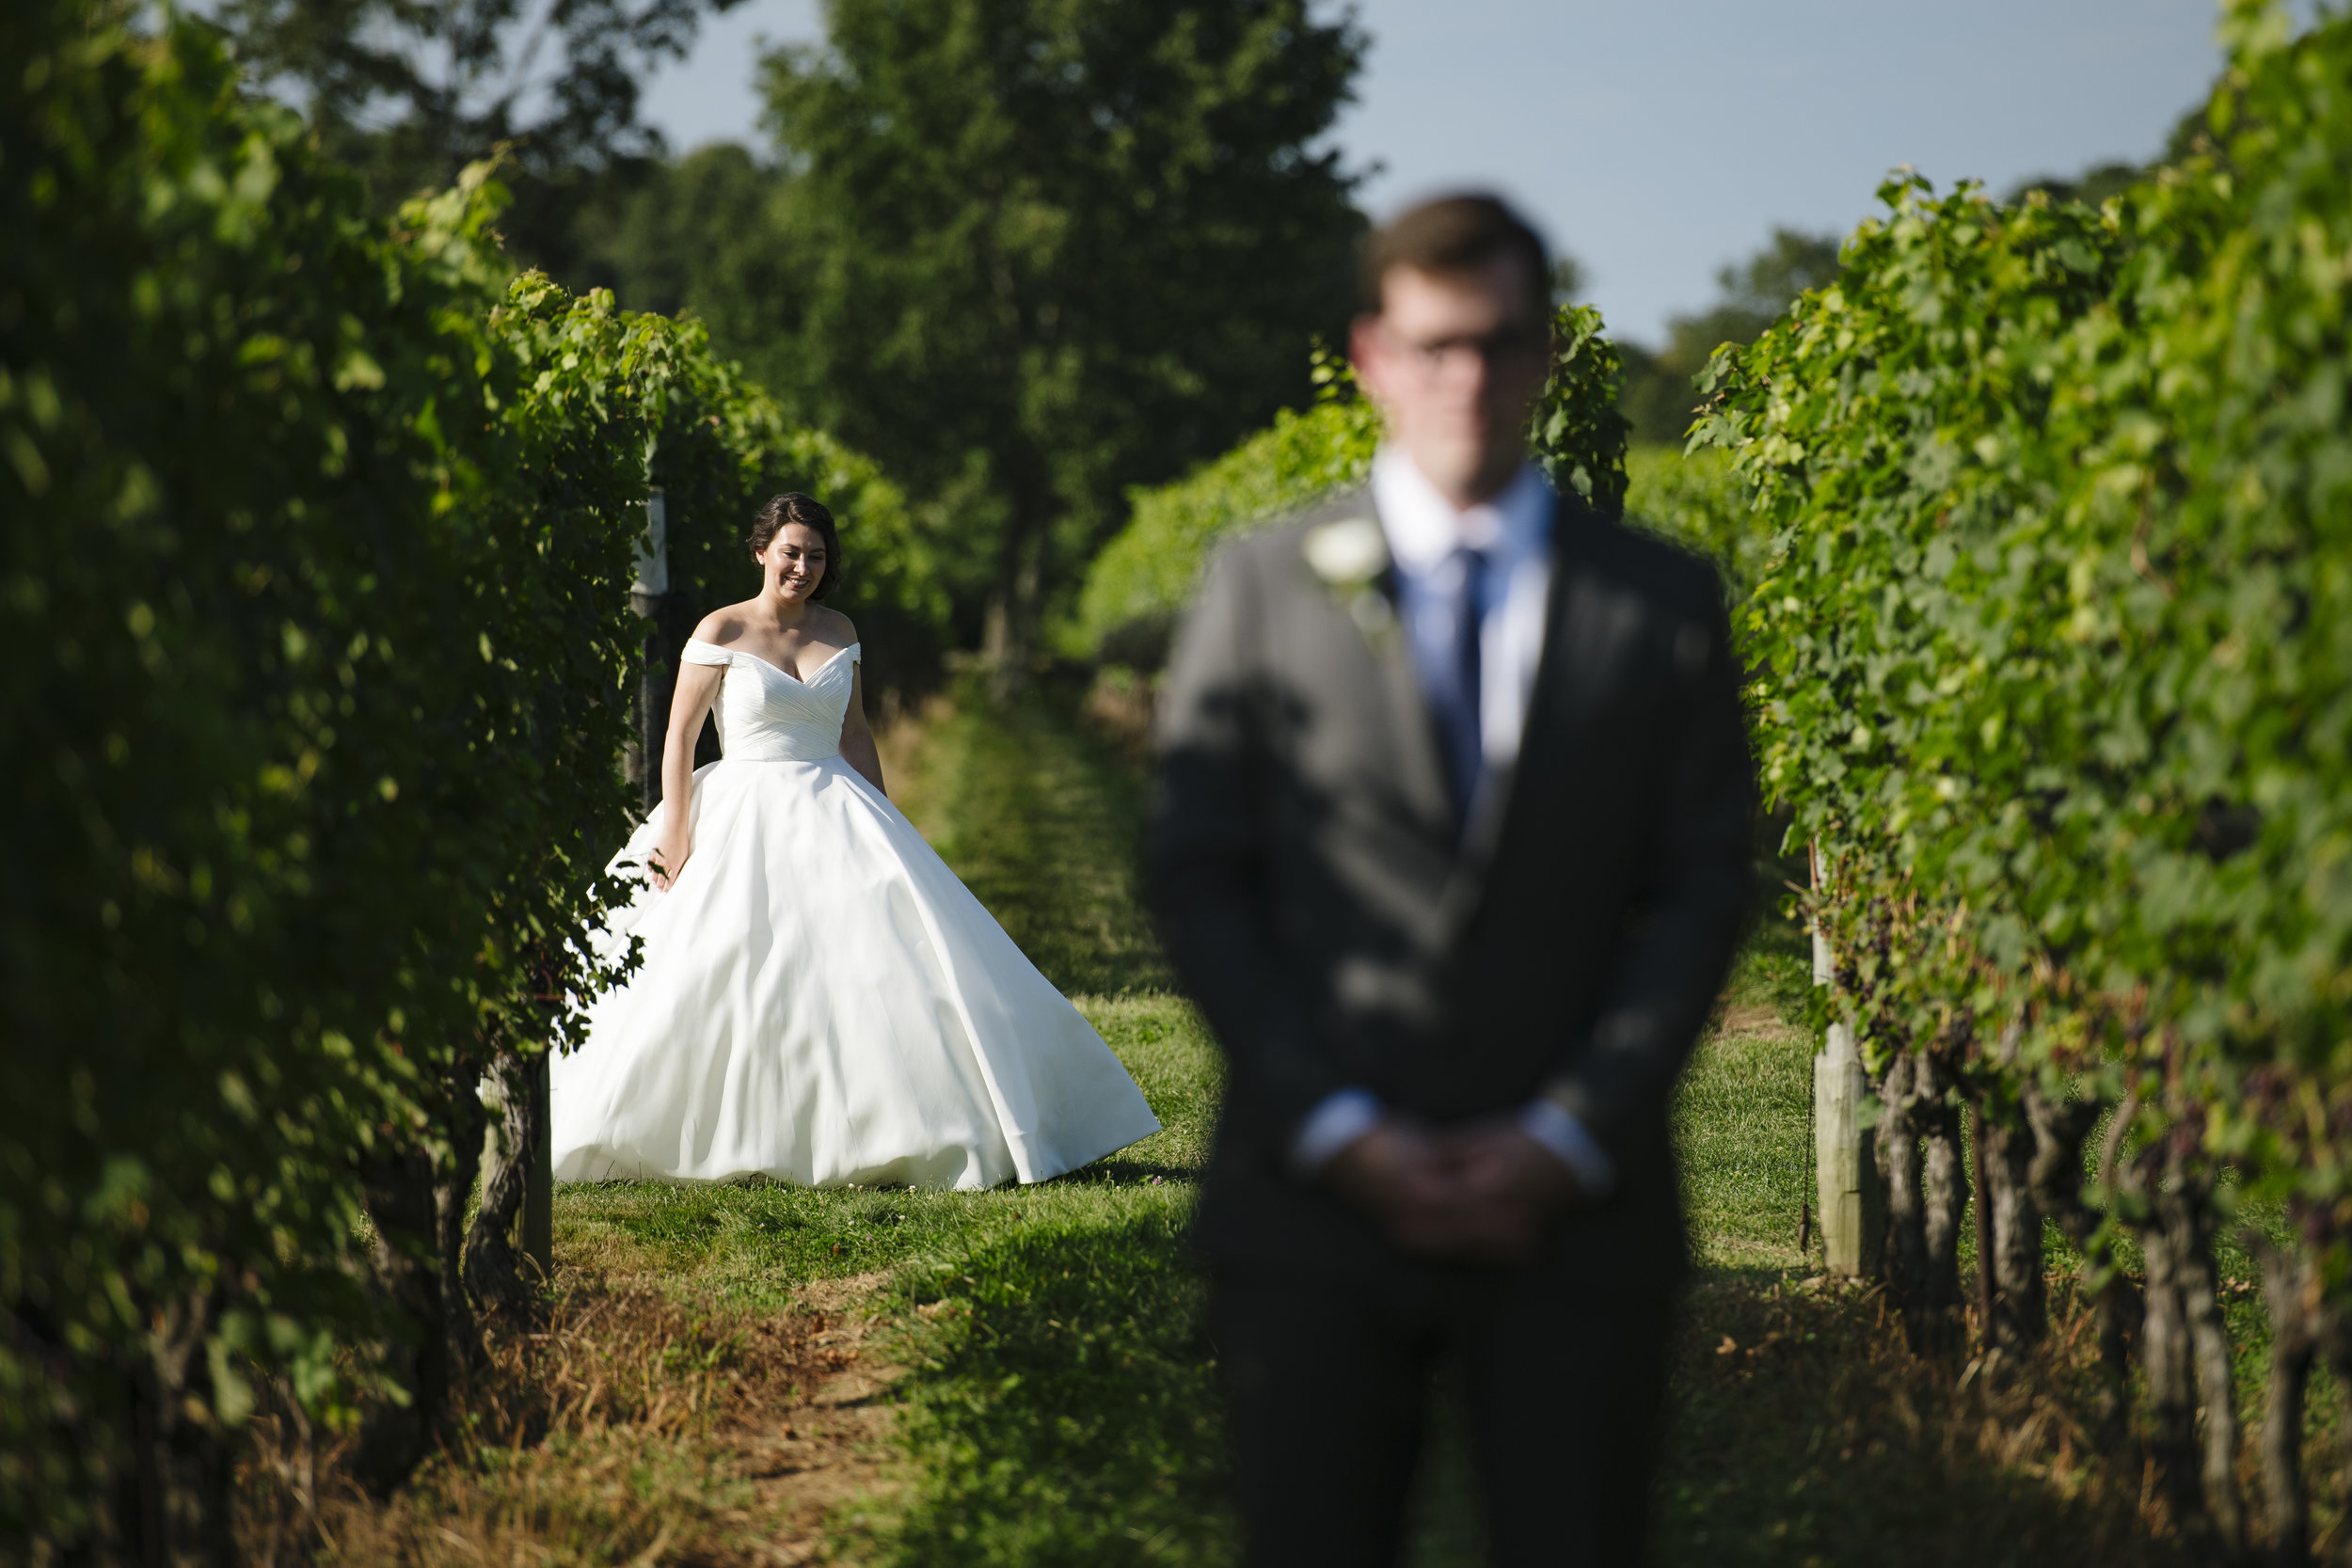 the bride and groom first look in the vineyard at Jonathan Edwards Winery. - Pearl Weddings & Events